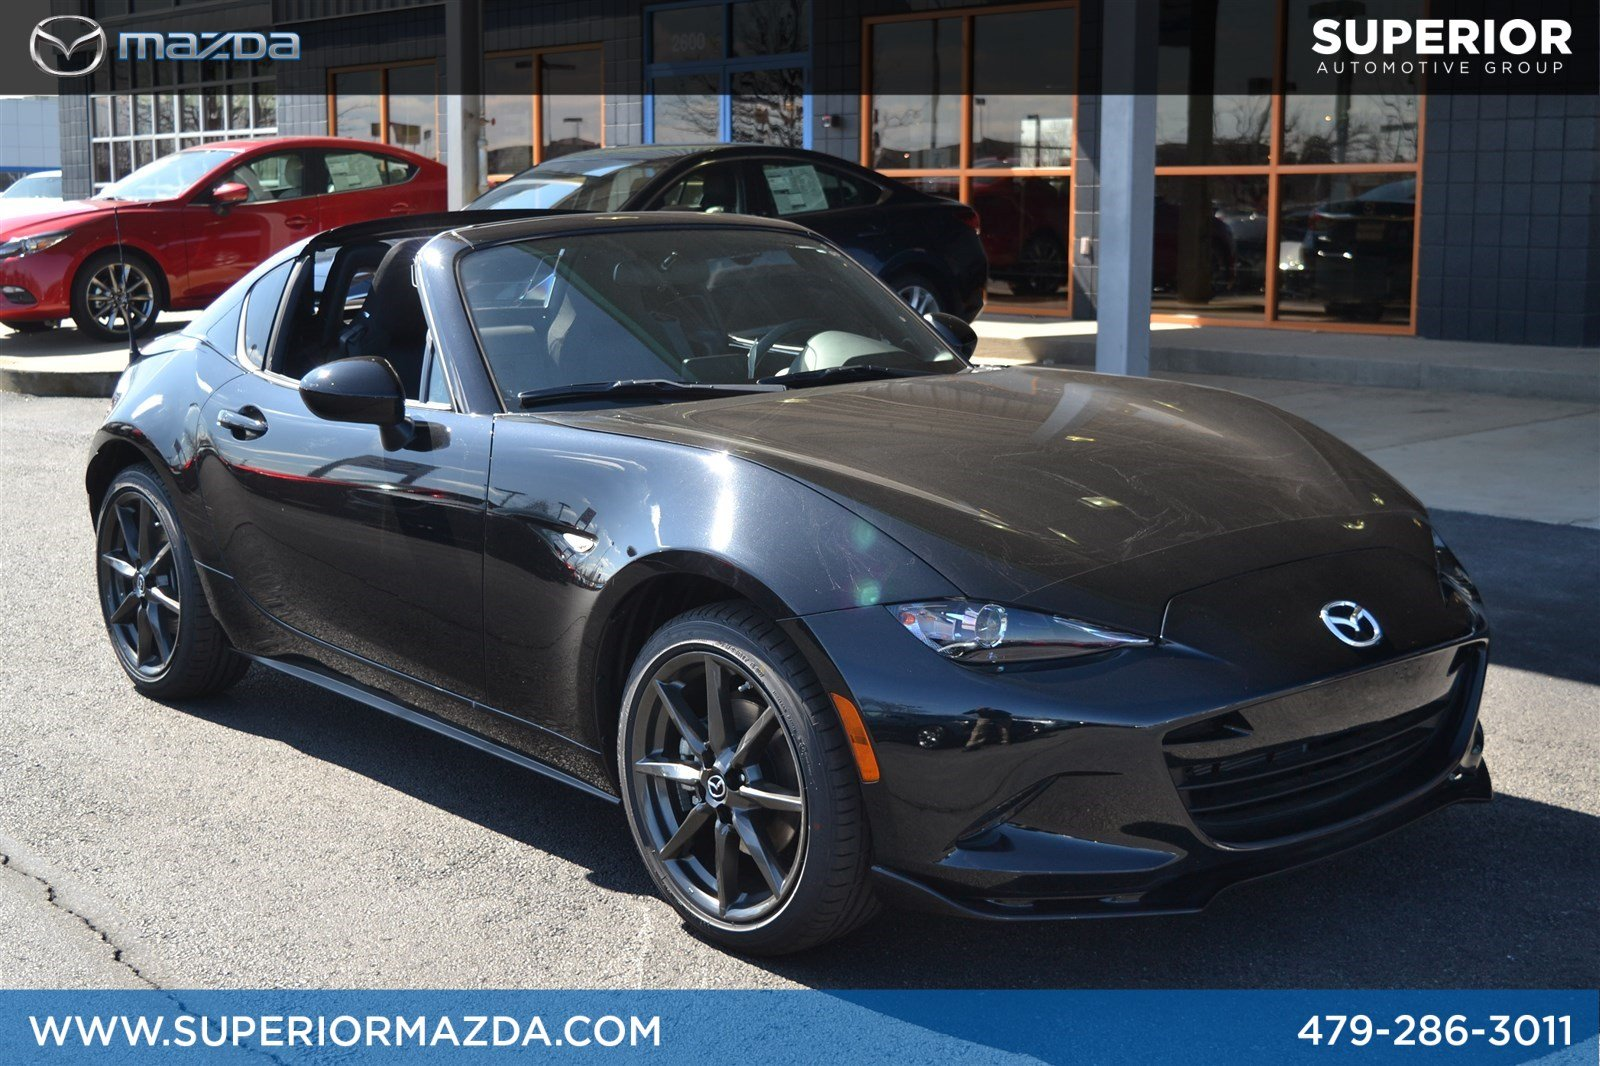 new 2018 mazda mx 5 miata rf club 2dr car in bentonville. Black Bedroom Furniture Sets. Home Design Ideas